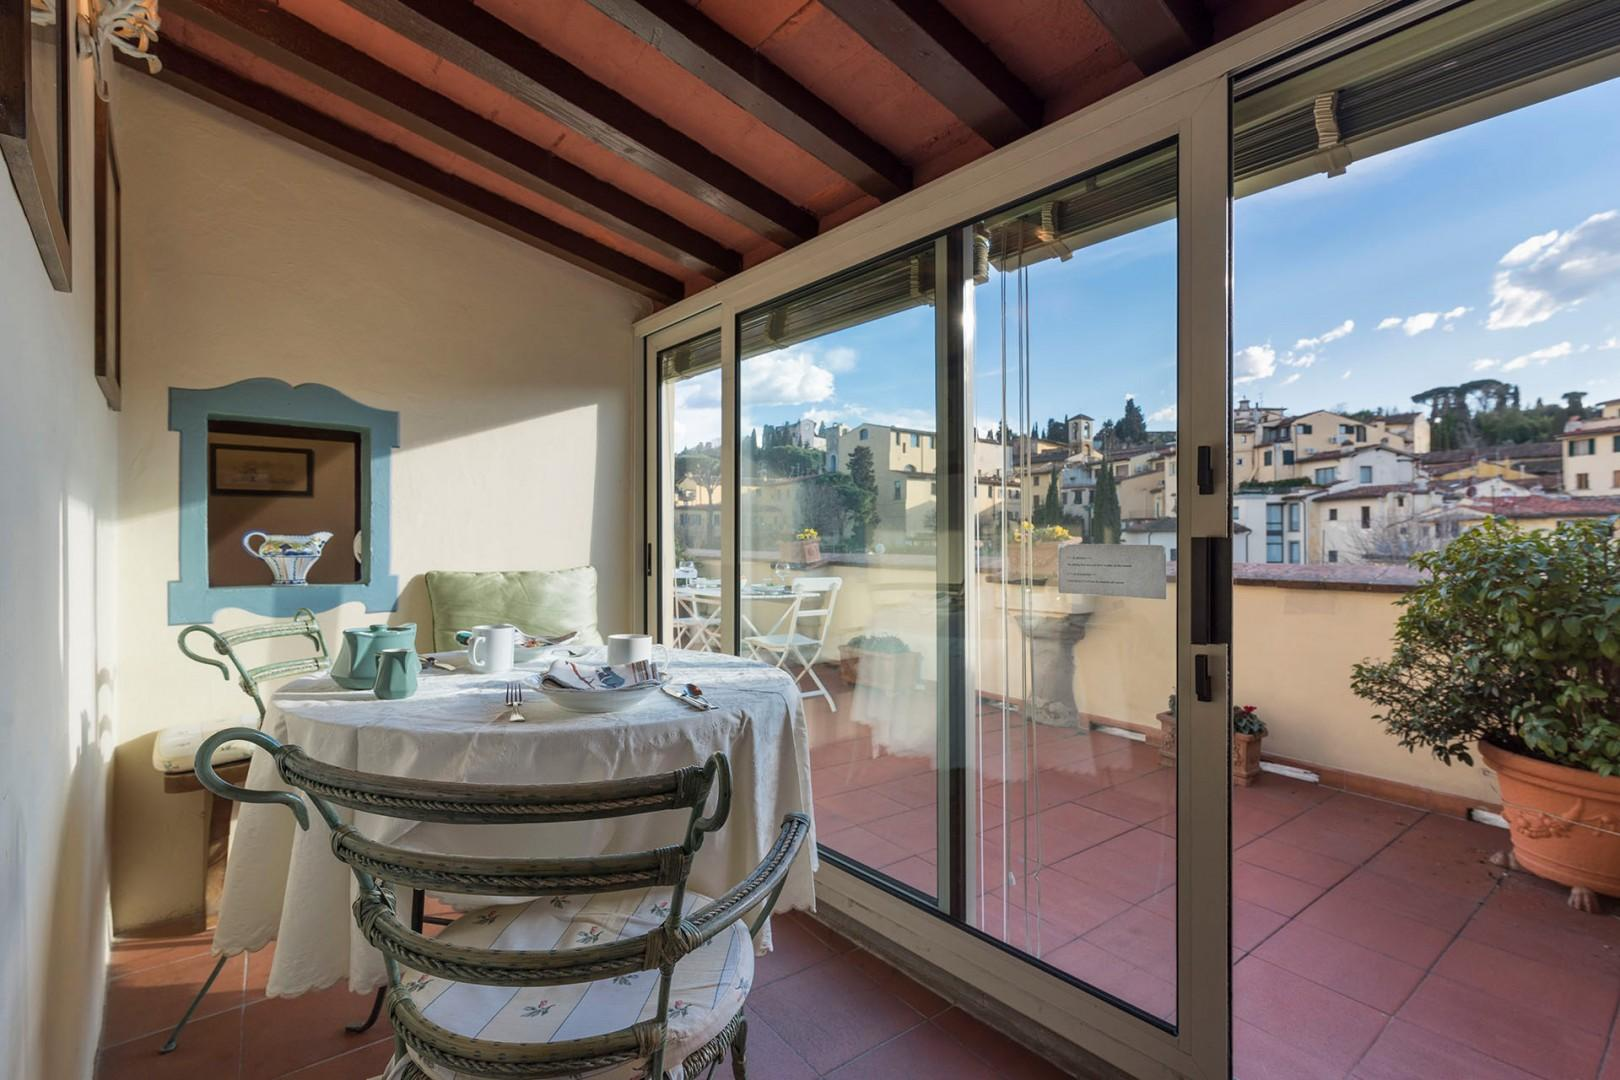 Glass enclosed sun room has a dining table with seating for 2 and views out the terrace.